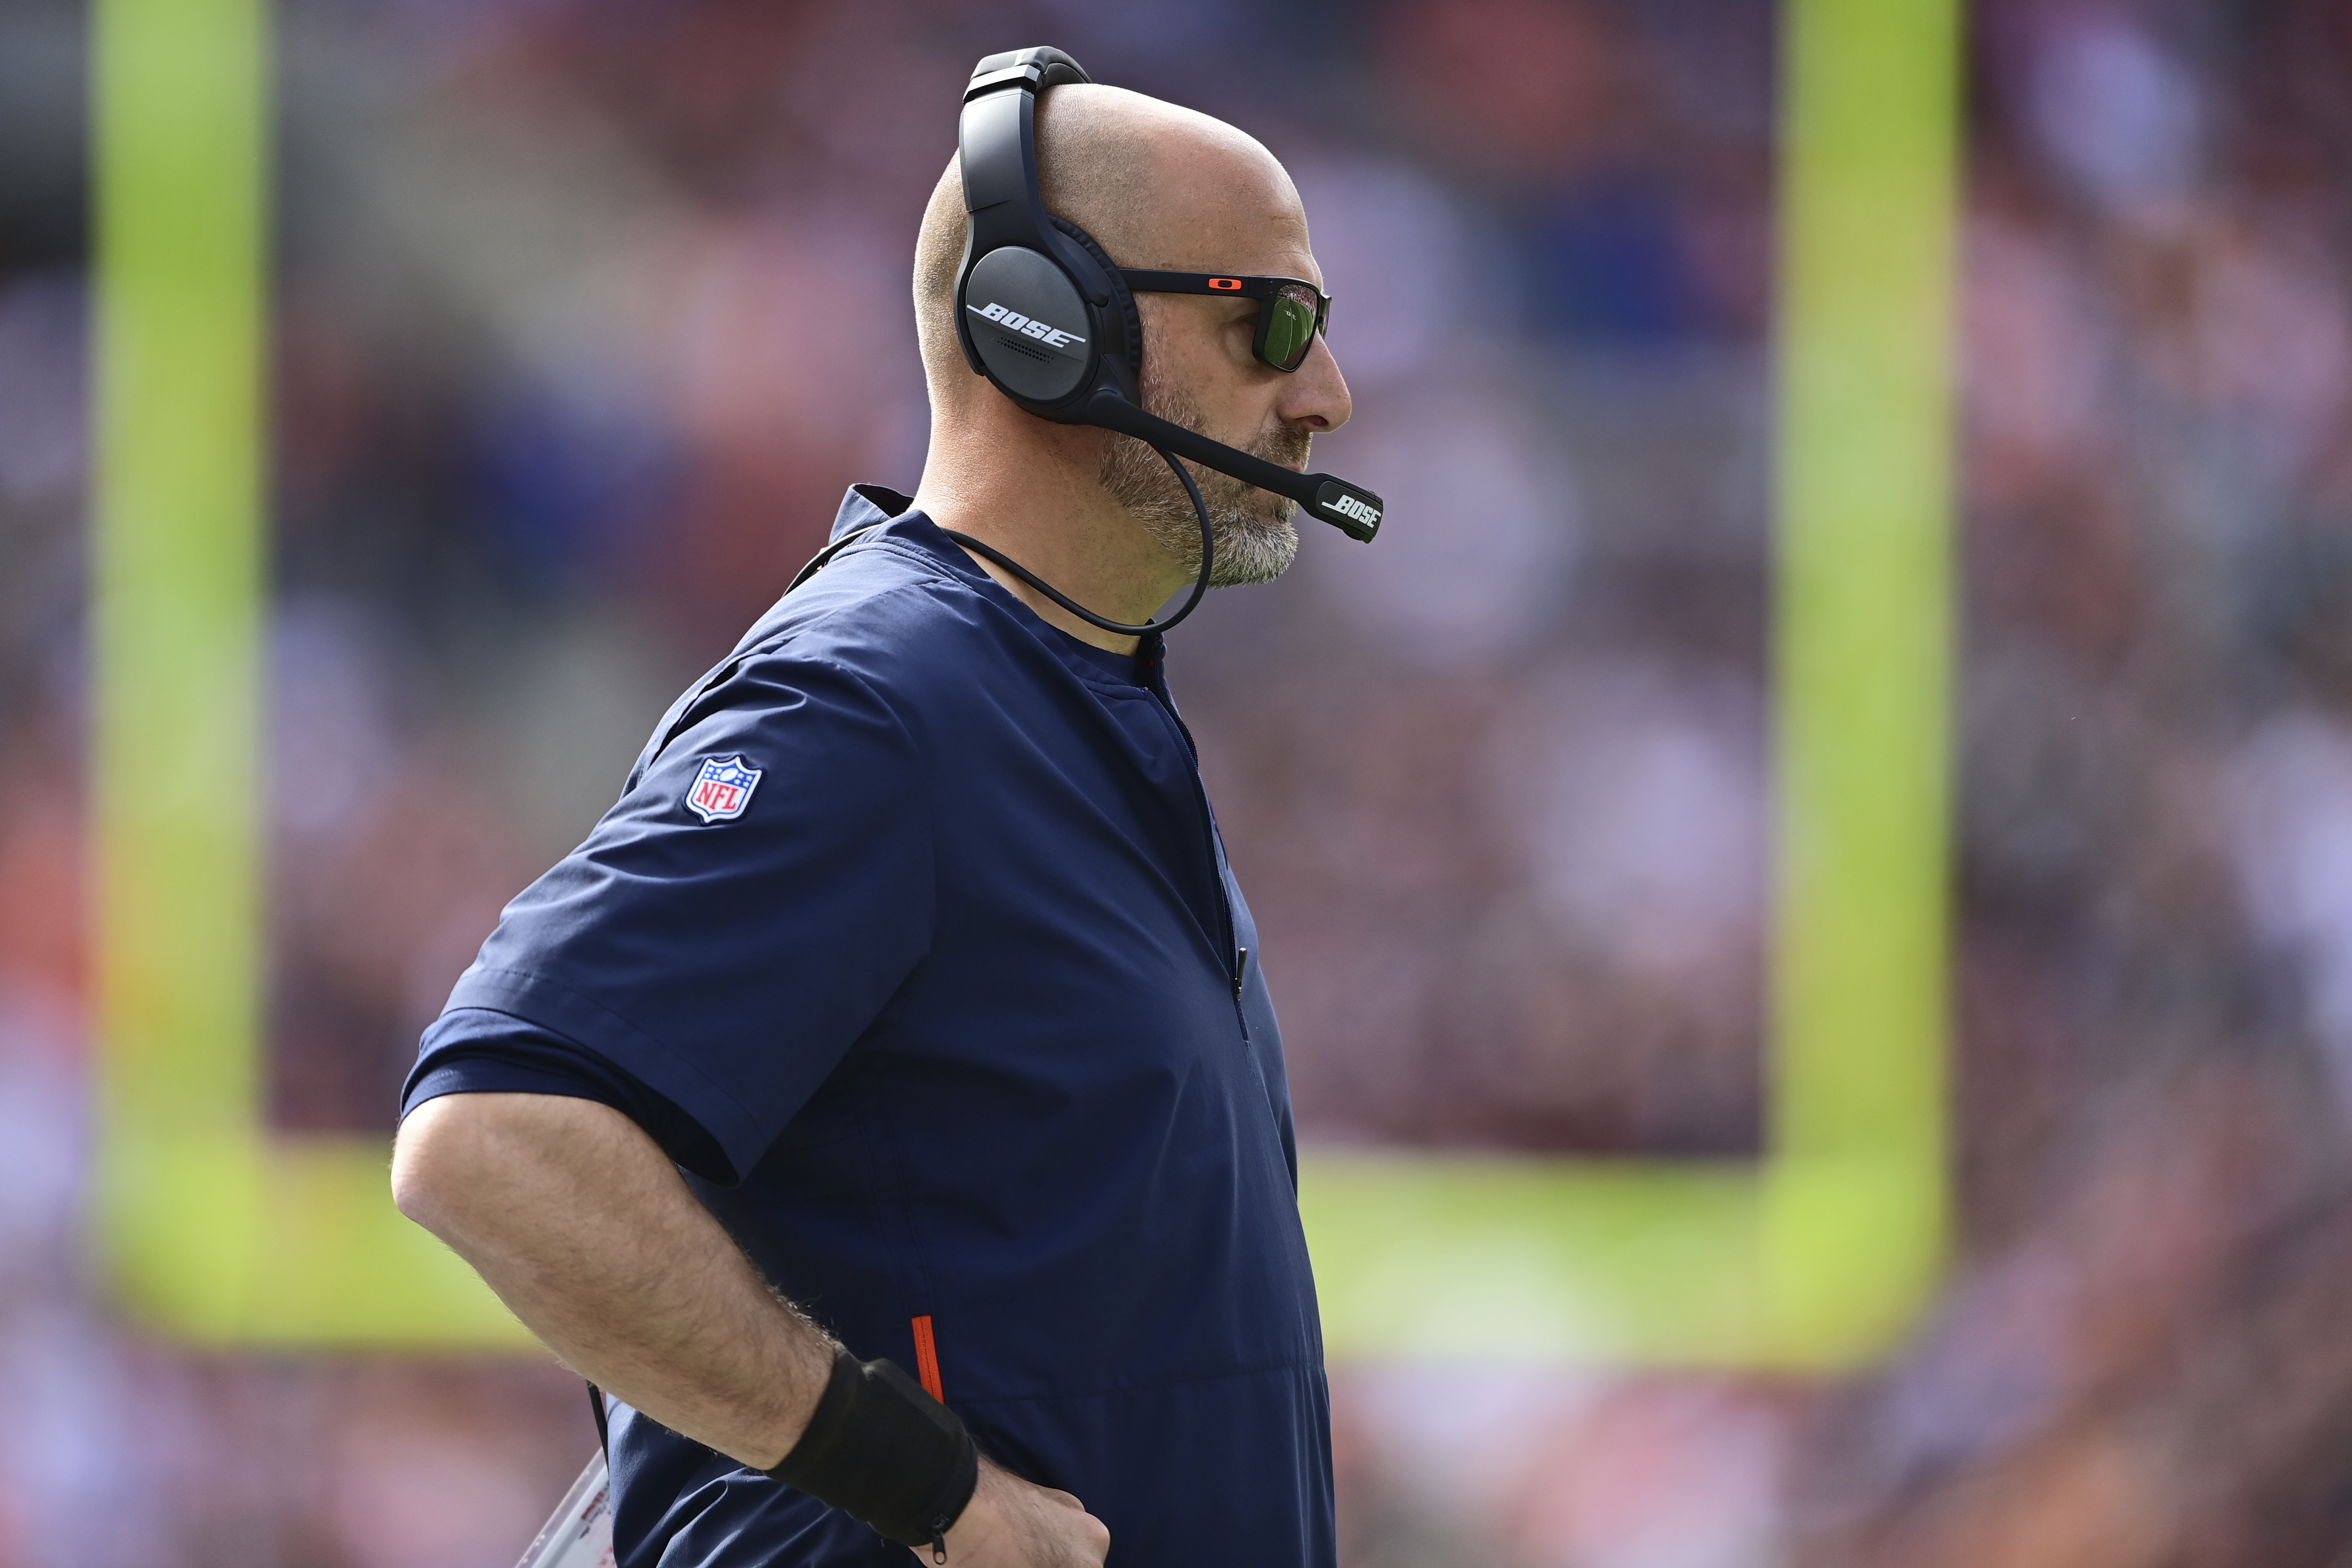 Bears coach Matt Nagy is 29-22 in the regular season after losing to the Browns.